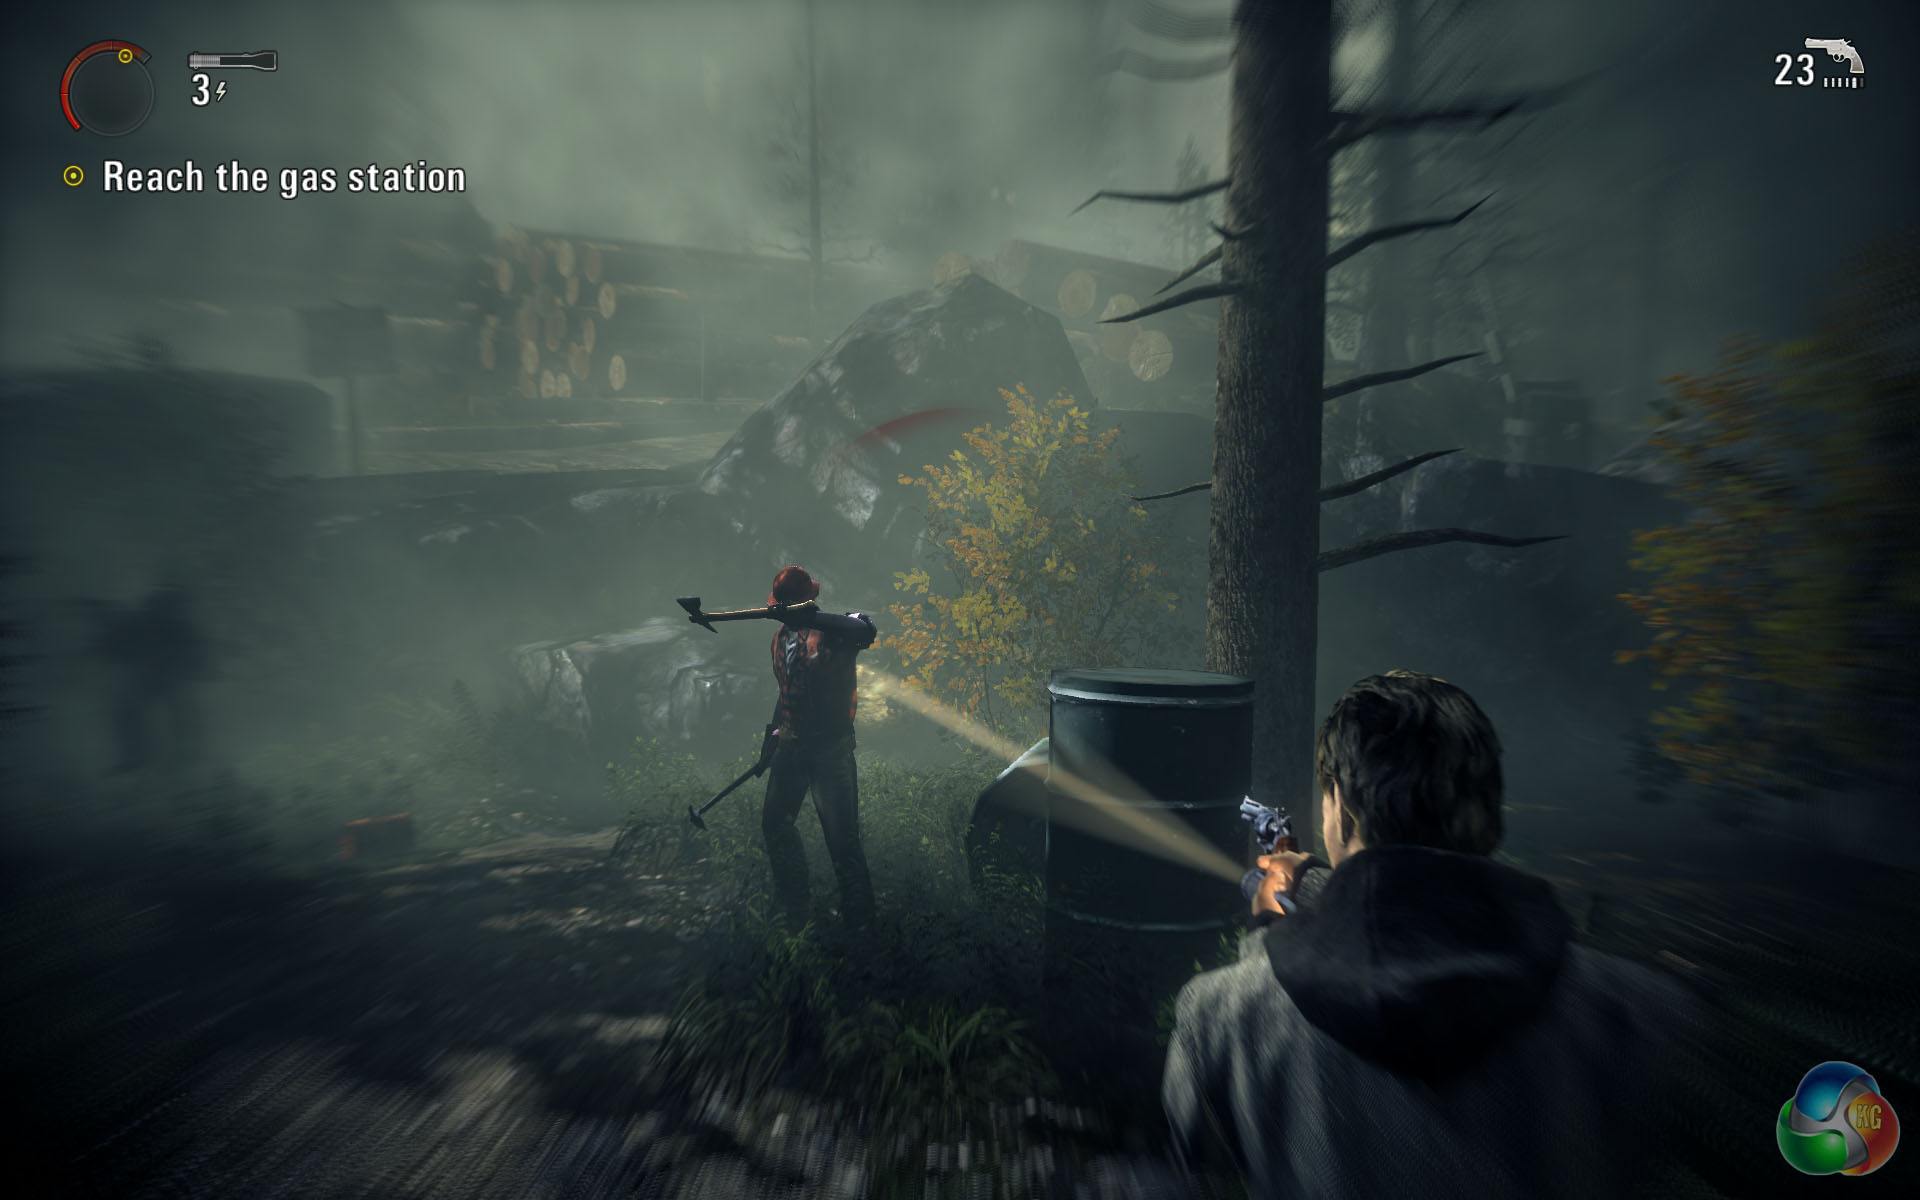 Alan Wake Backgrounds, Compatible - PC, Mobile, Gadgets| 1920x1200 px